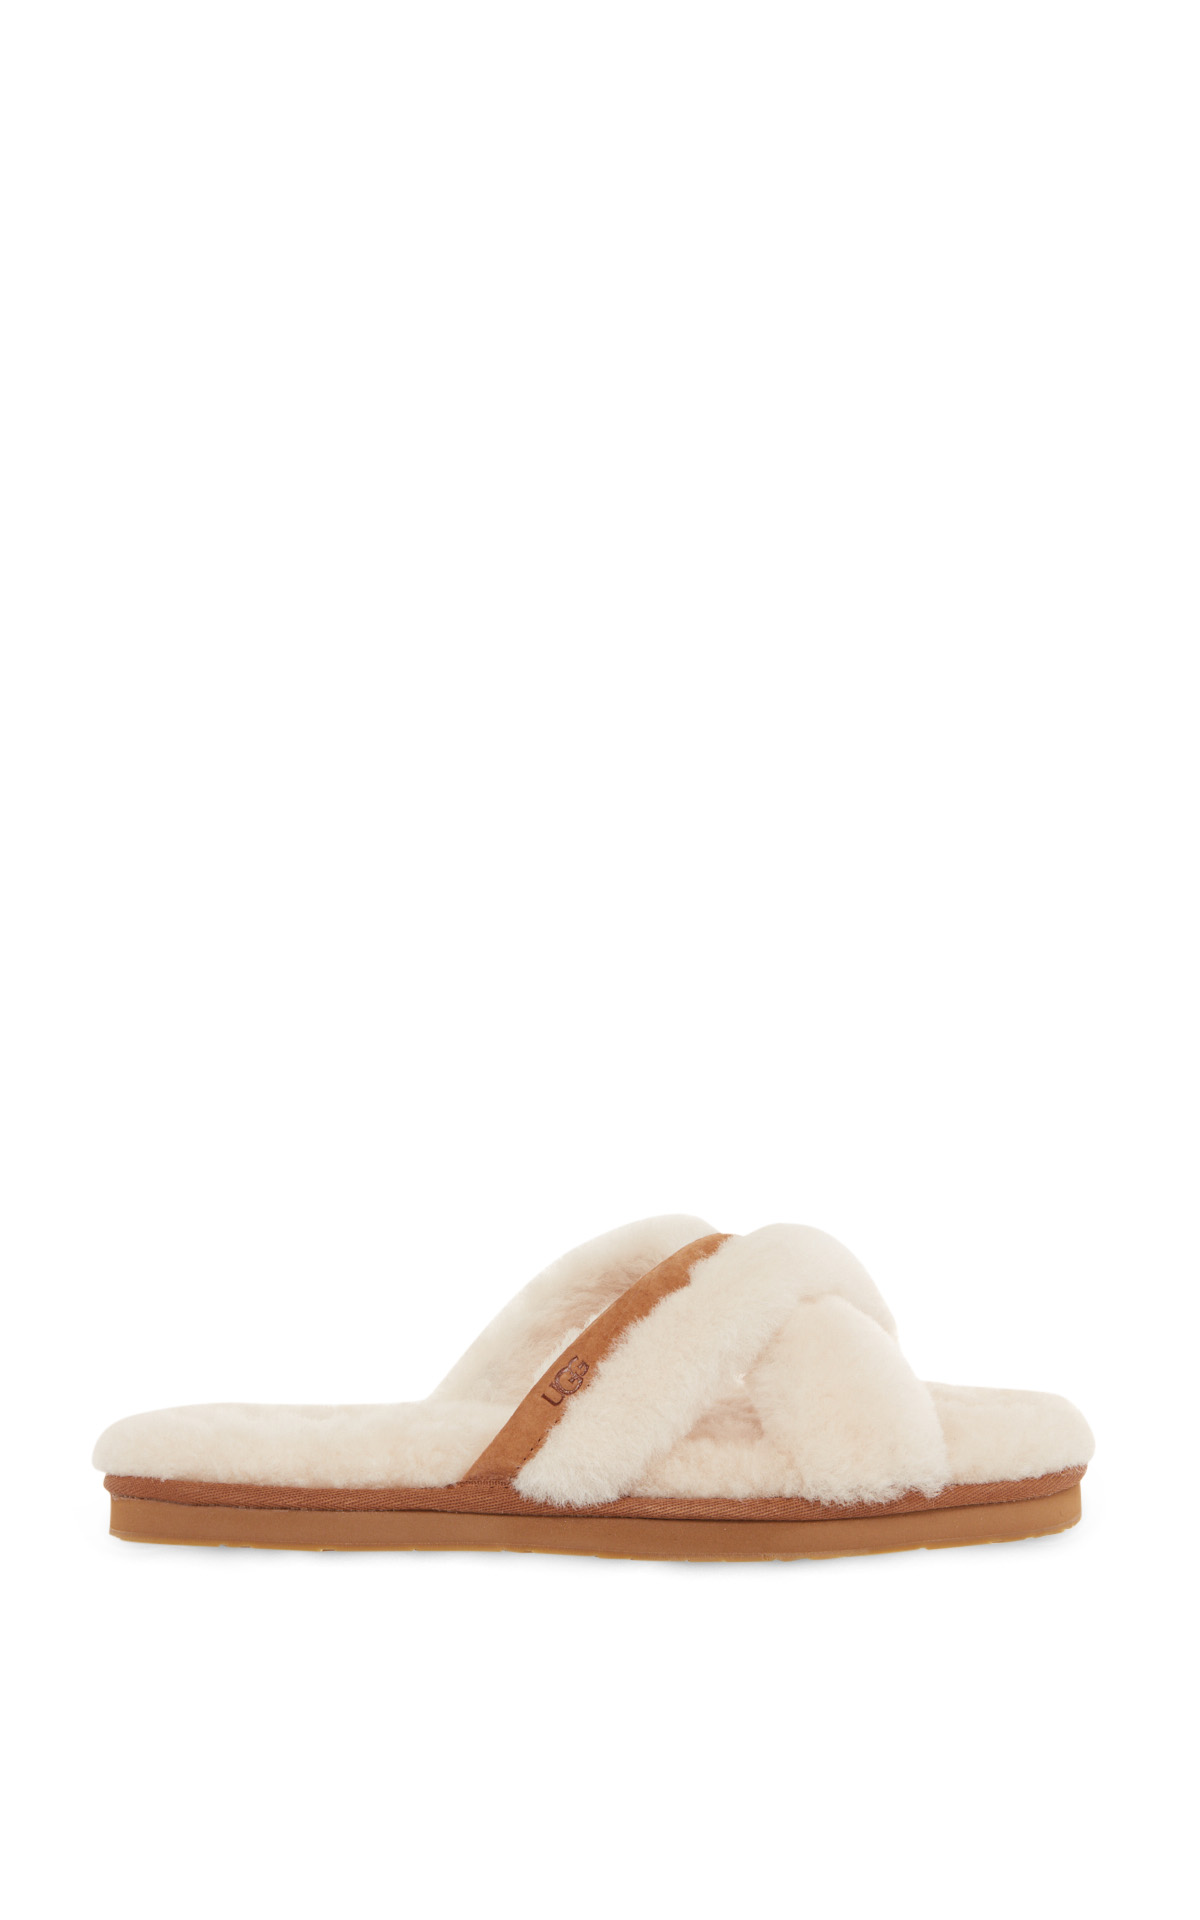 UGG fur Abela sandals la vallée village